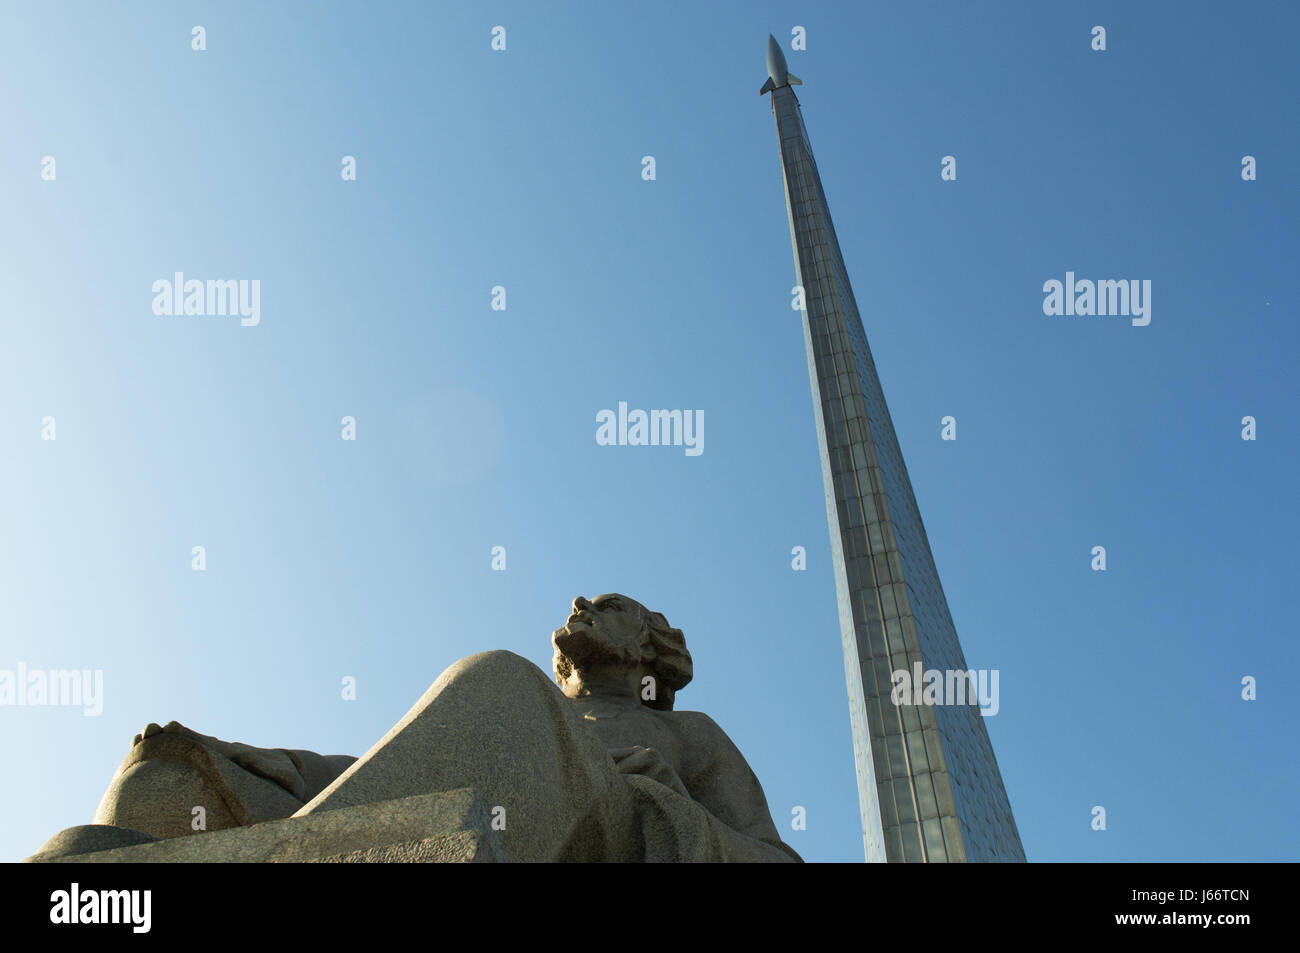 Soviet memorial dedicated to cosmonauts from kaliningrad - Statue Of Konstantin Tsiolkovsky Precursor Of Astronautics And The Monument To The Conquerors Of